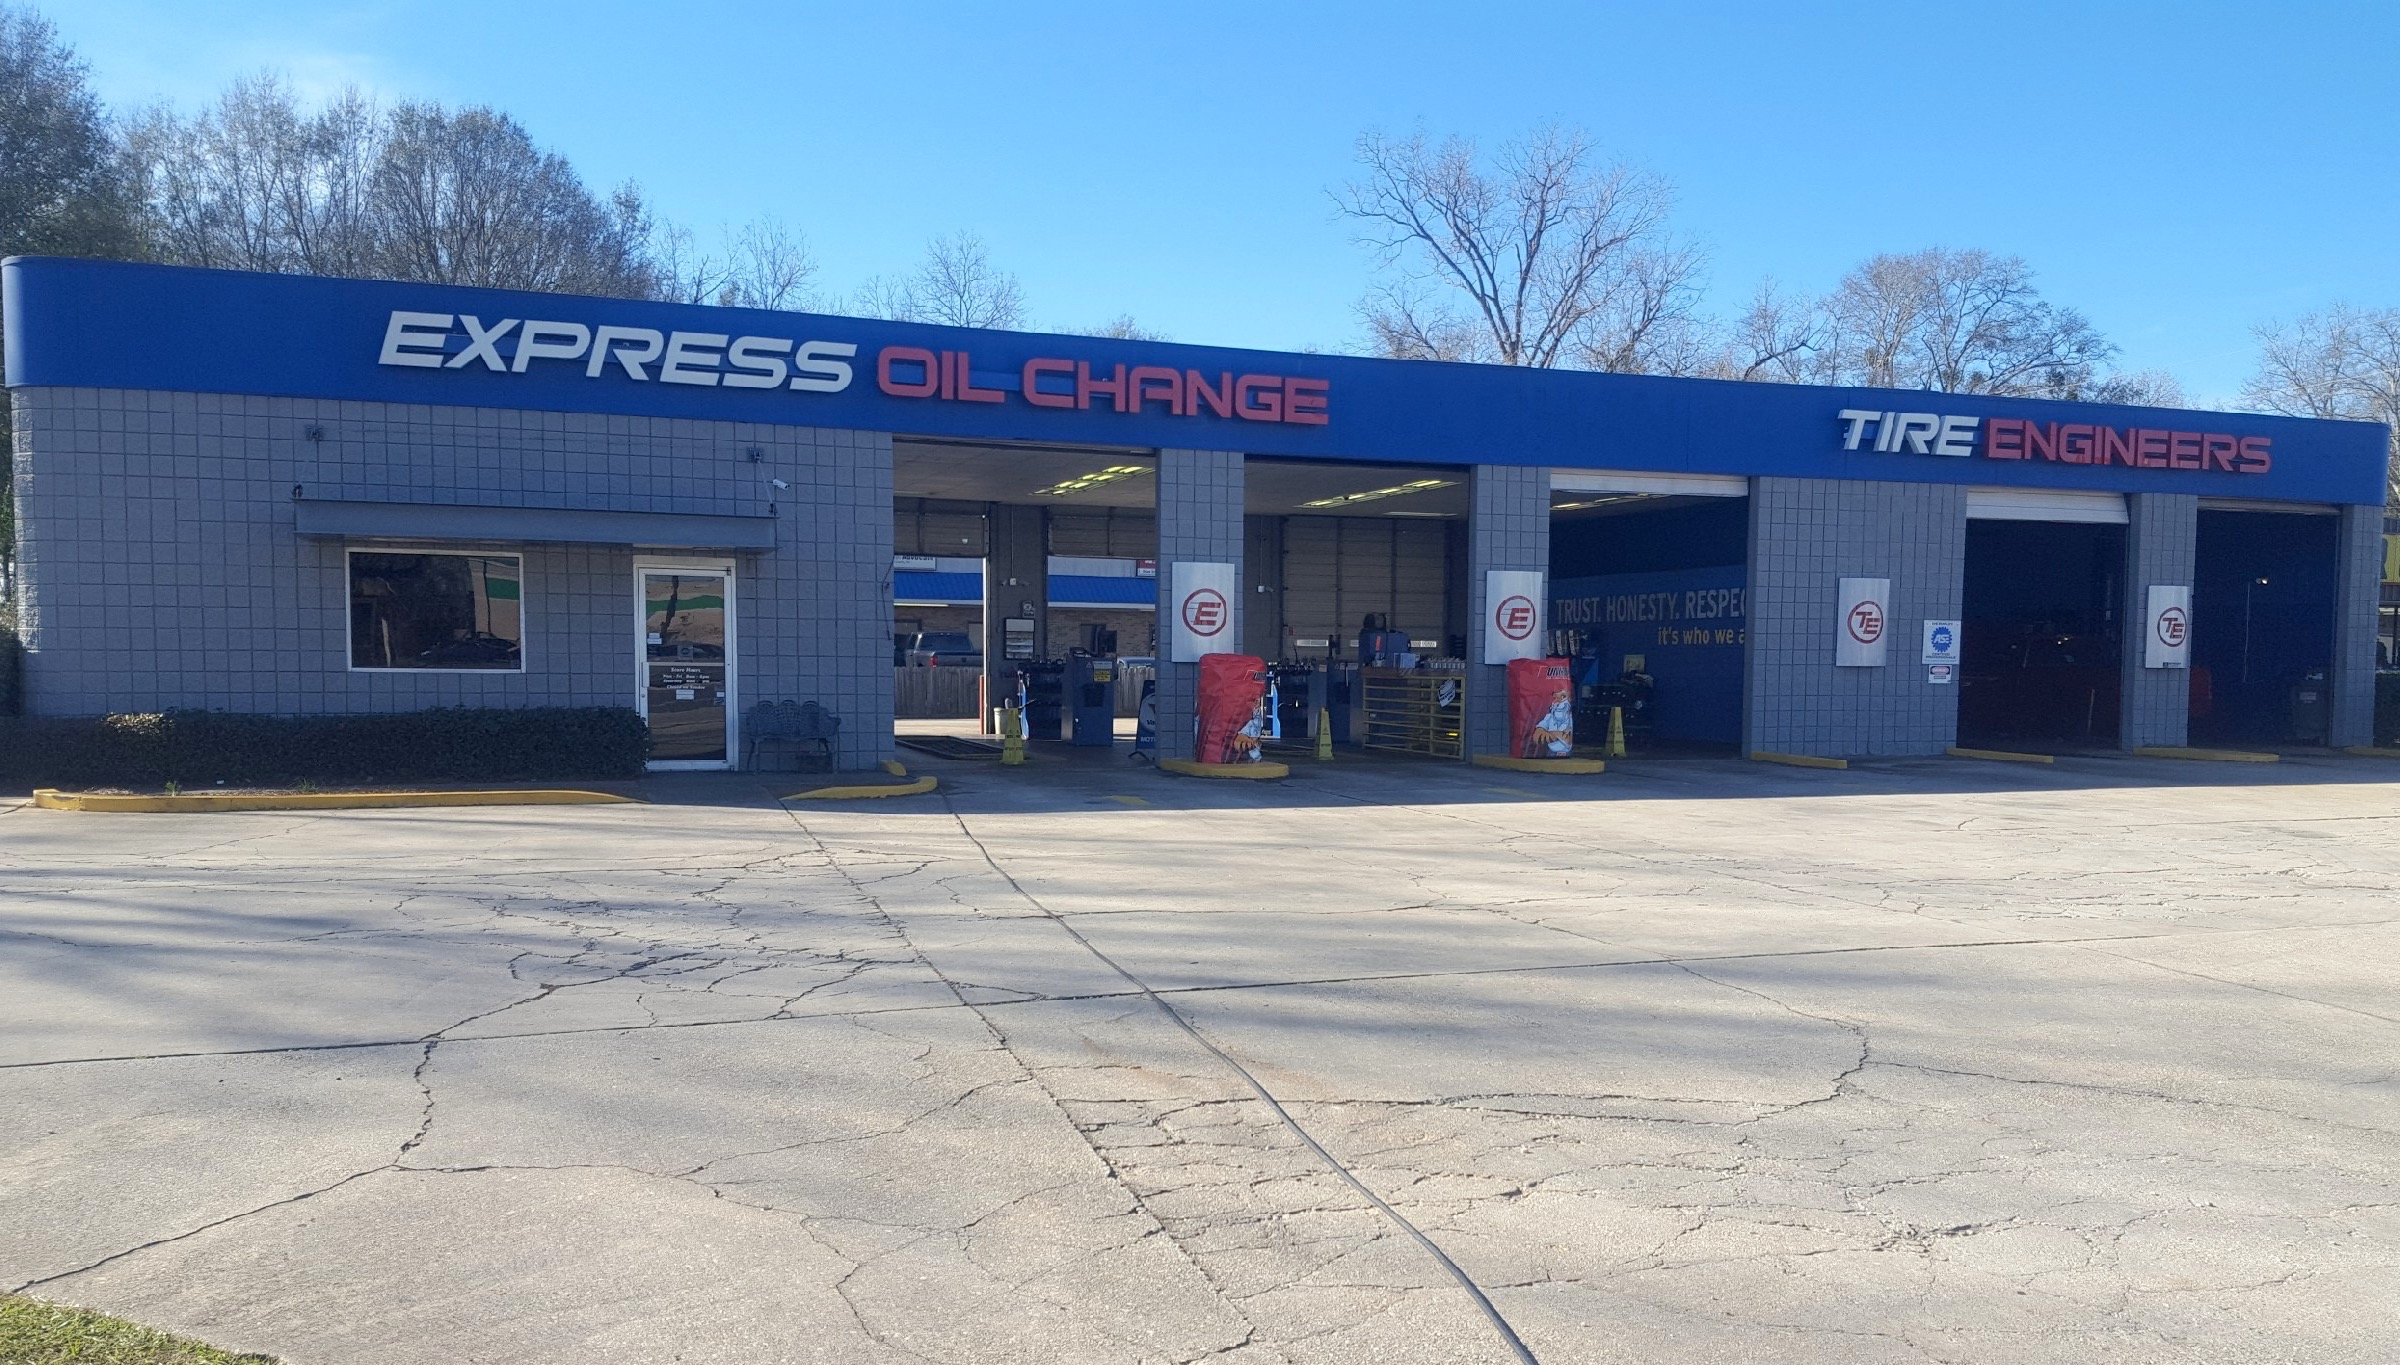 Express Oil Change & Tire Engineers Robertsdale, AL store